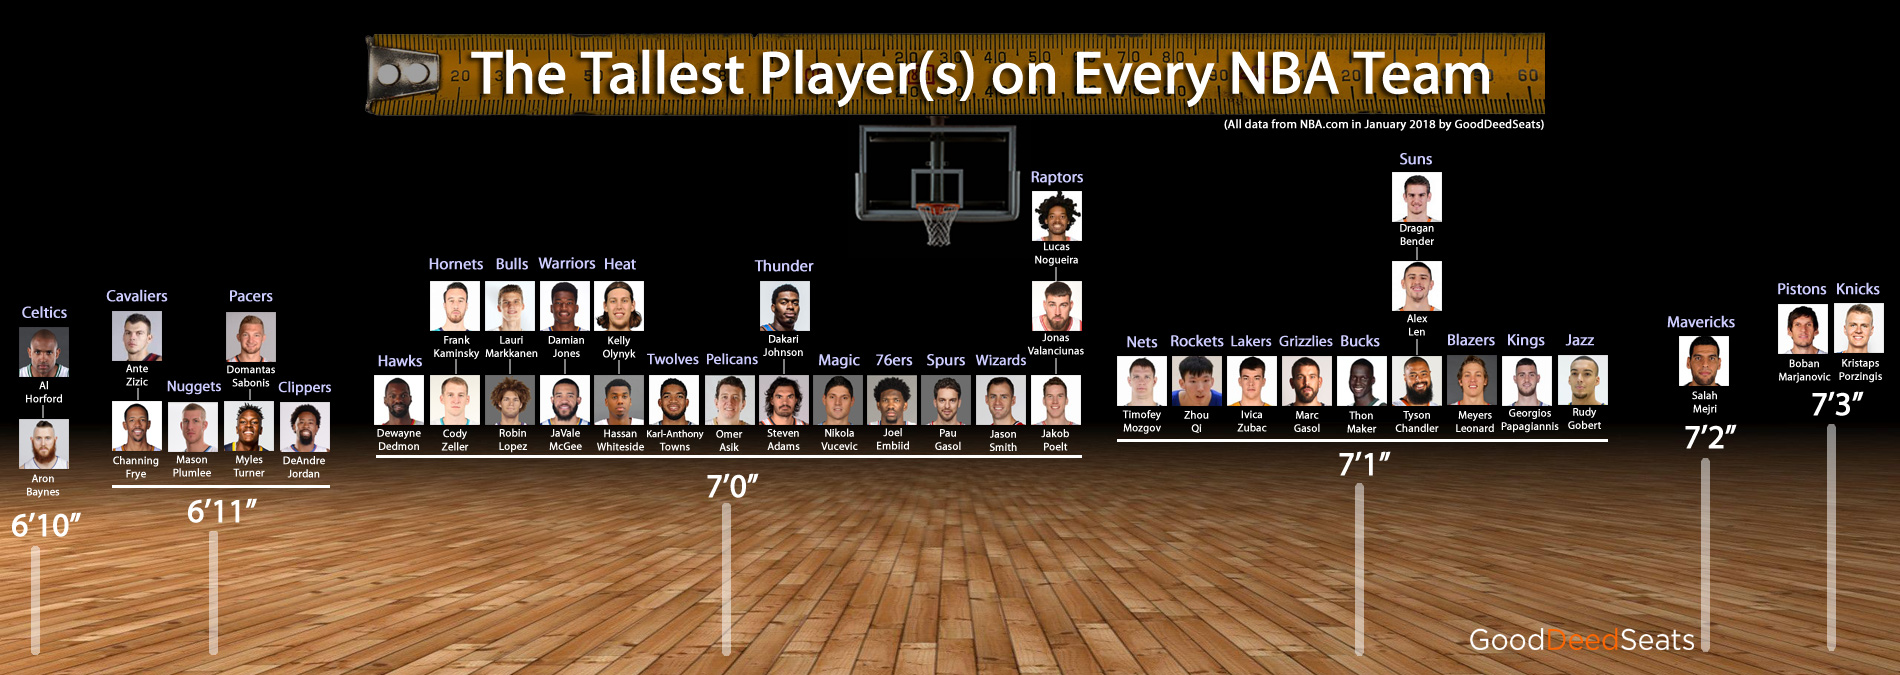 The Tallest Player(s) on Every NBA Team & Their Heights